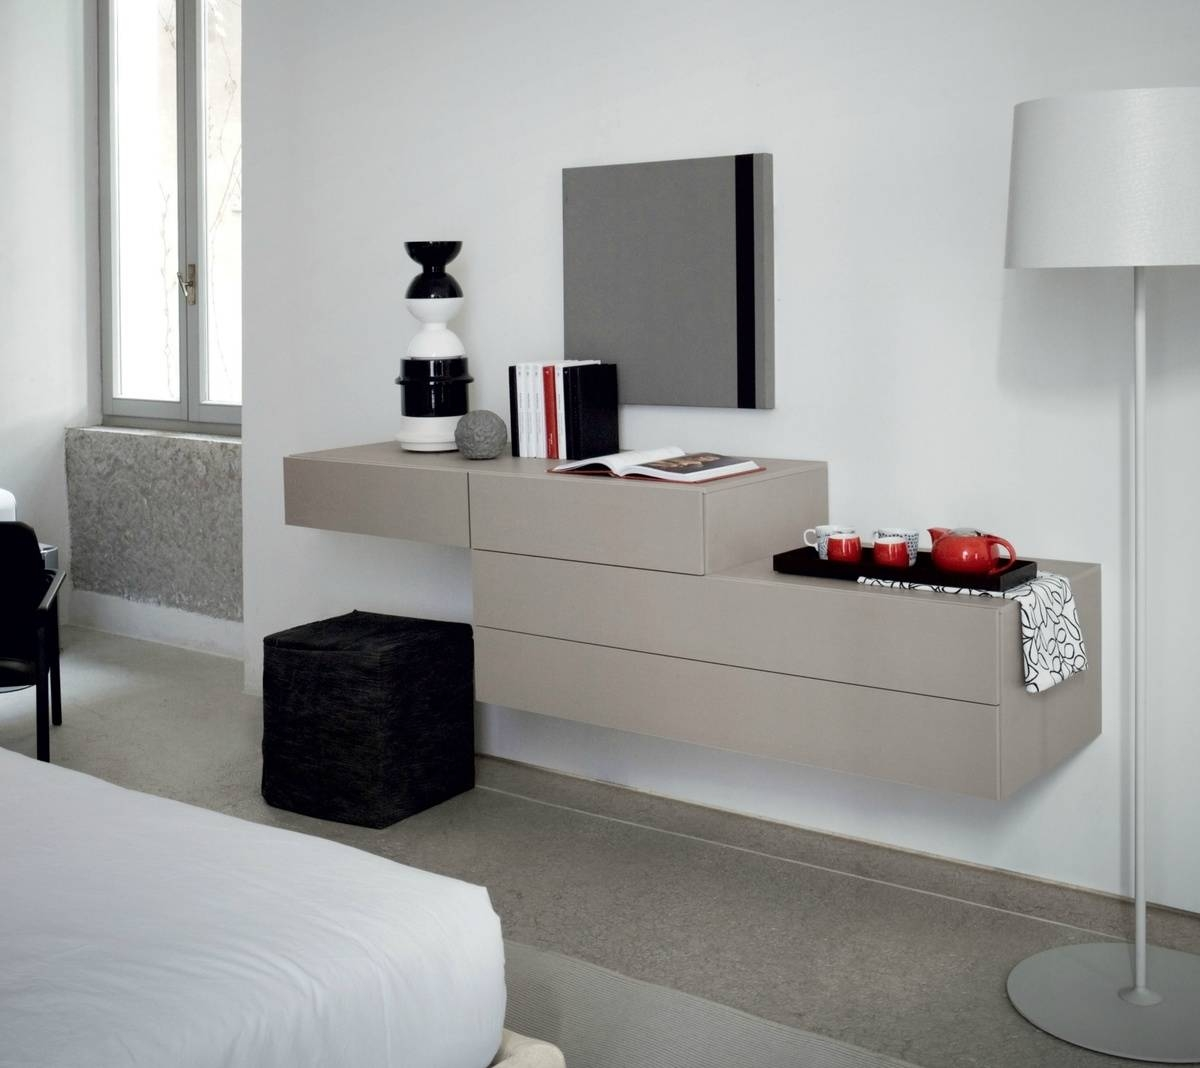 Modern Dressing Tables | Classic Dressing Tables With Mirrors Regarding Contemporary Dressing Table Mirrors (View 23 of 25)